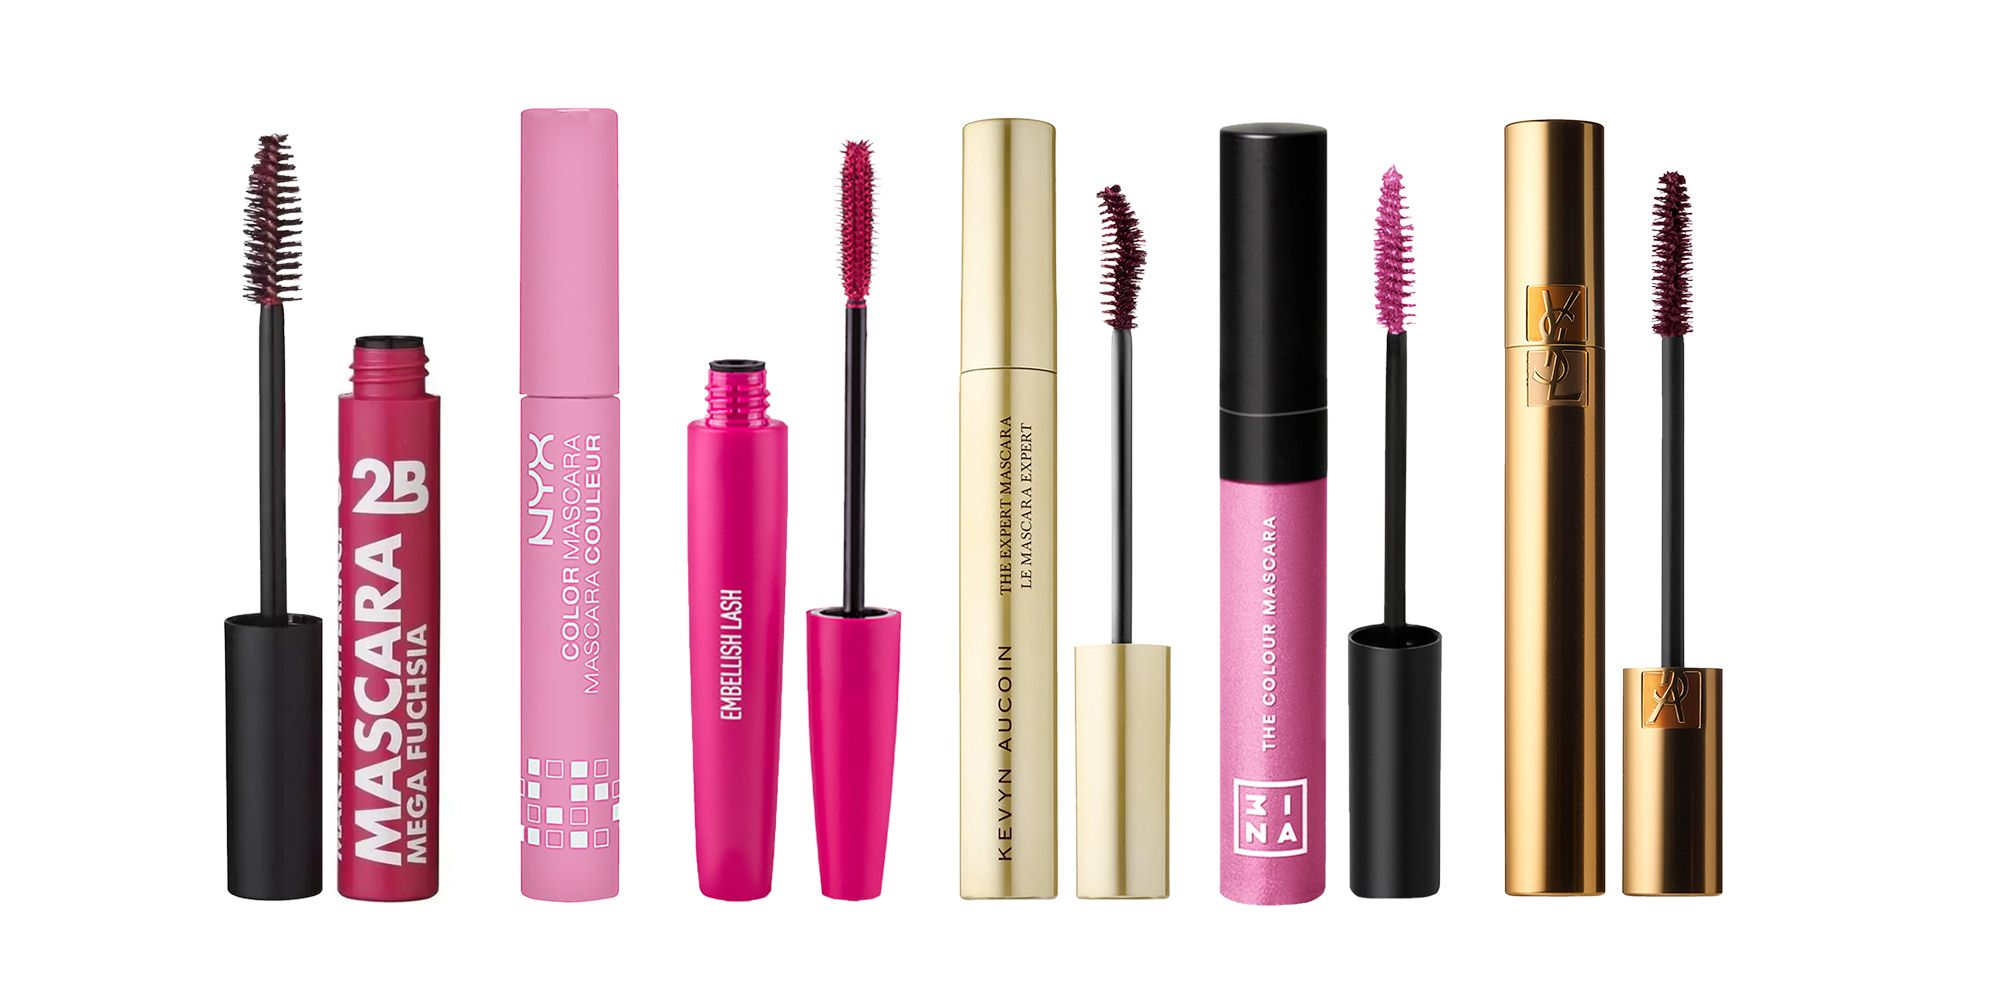 7 pink mascaras to try today the best pink mascara to experiment with